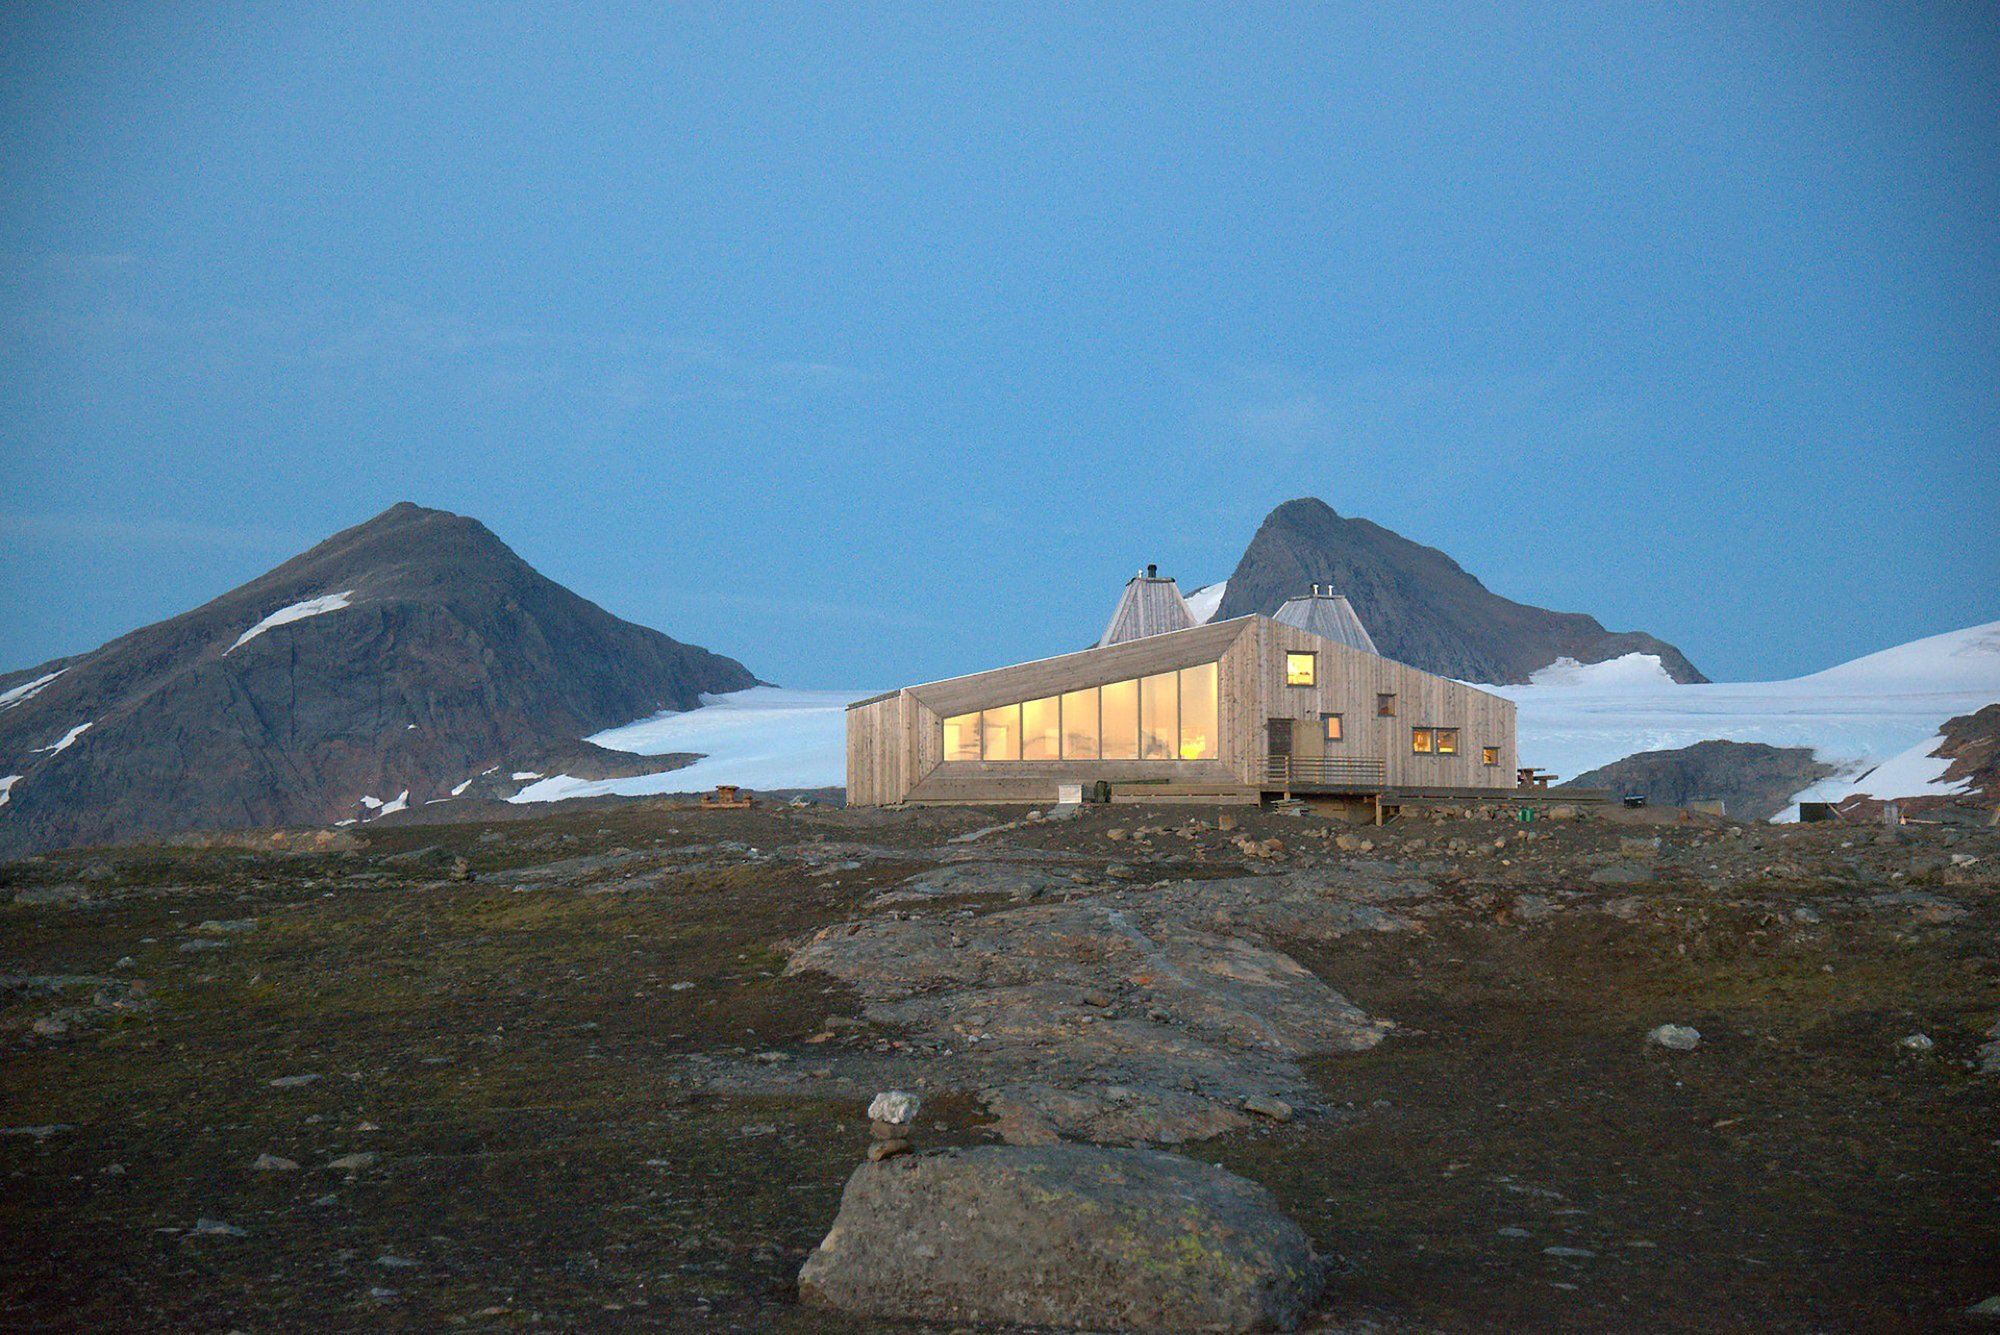 Rabot Tourist Cabin - JVA - Norway - Retreat - Exterior - Humble Homes